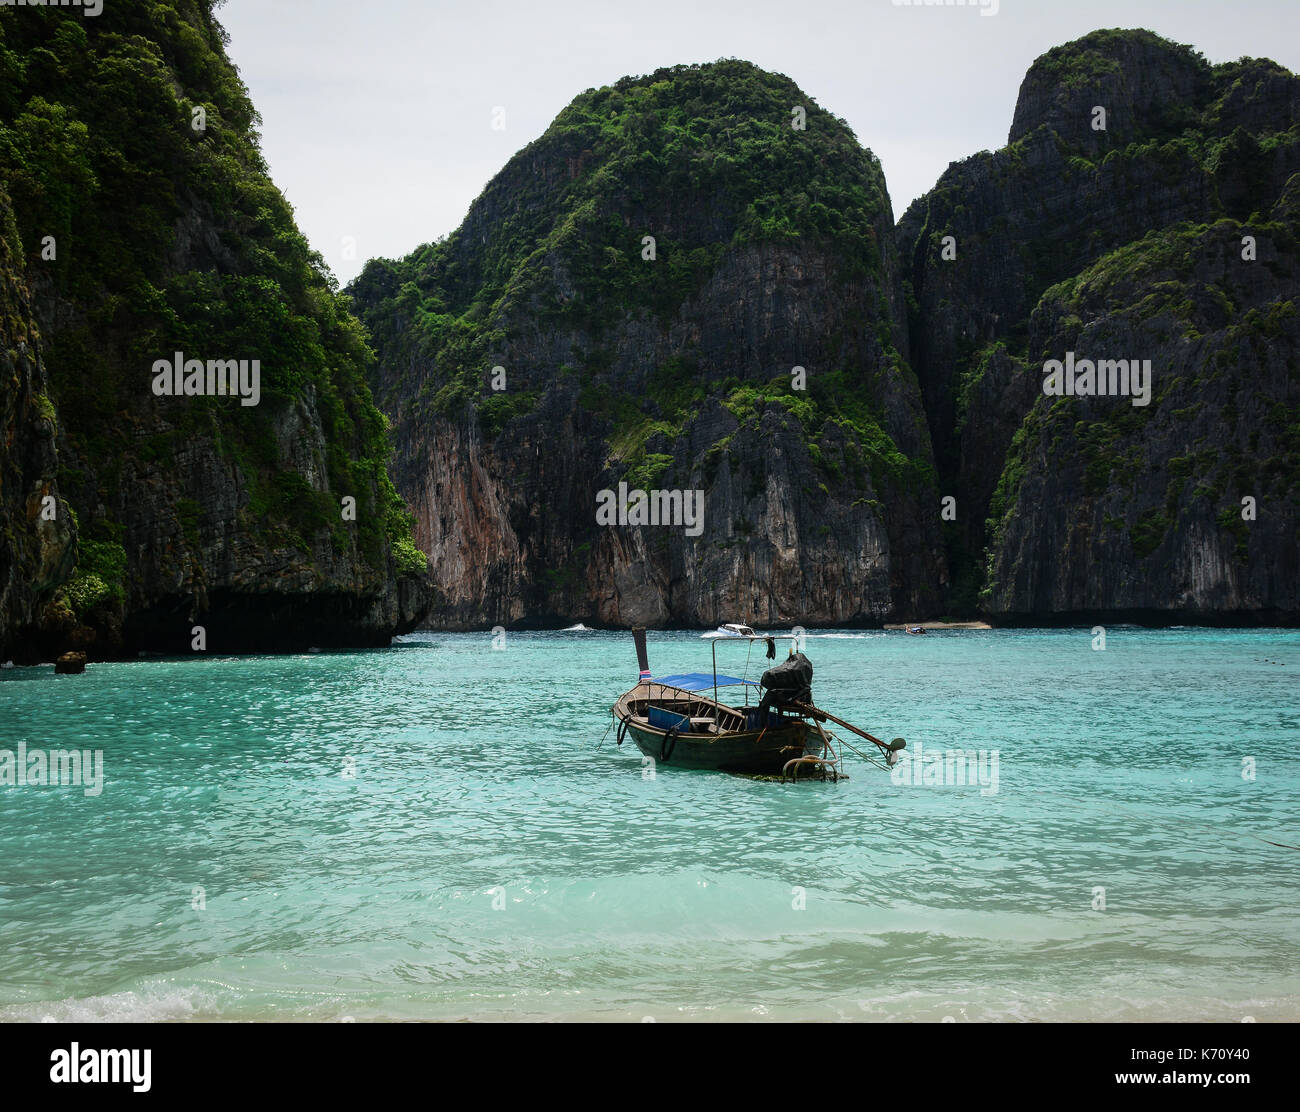 Phi Phi Beach: A Motorboat Waiting On The Beach In Koh Phi Phi, Thailand